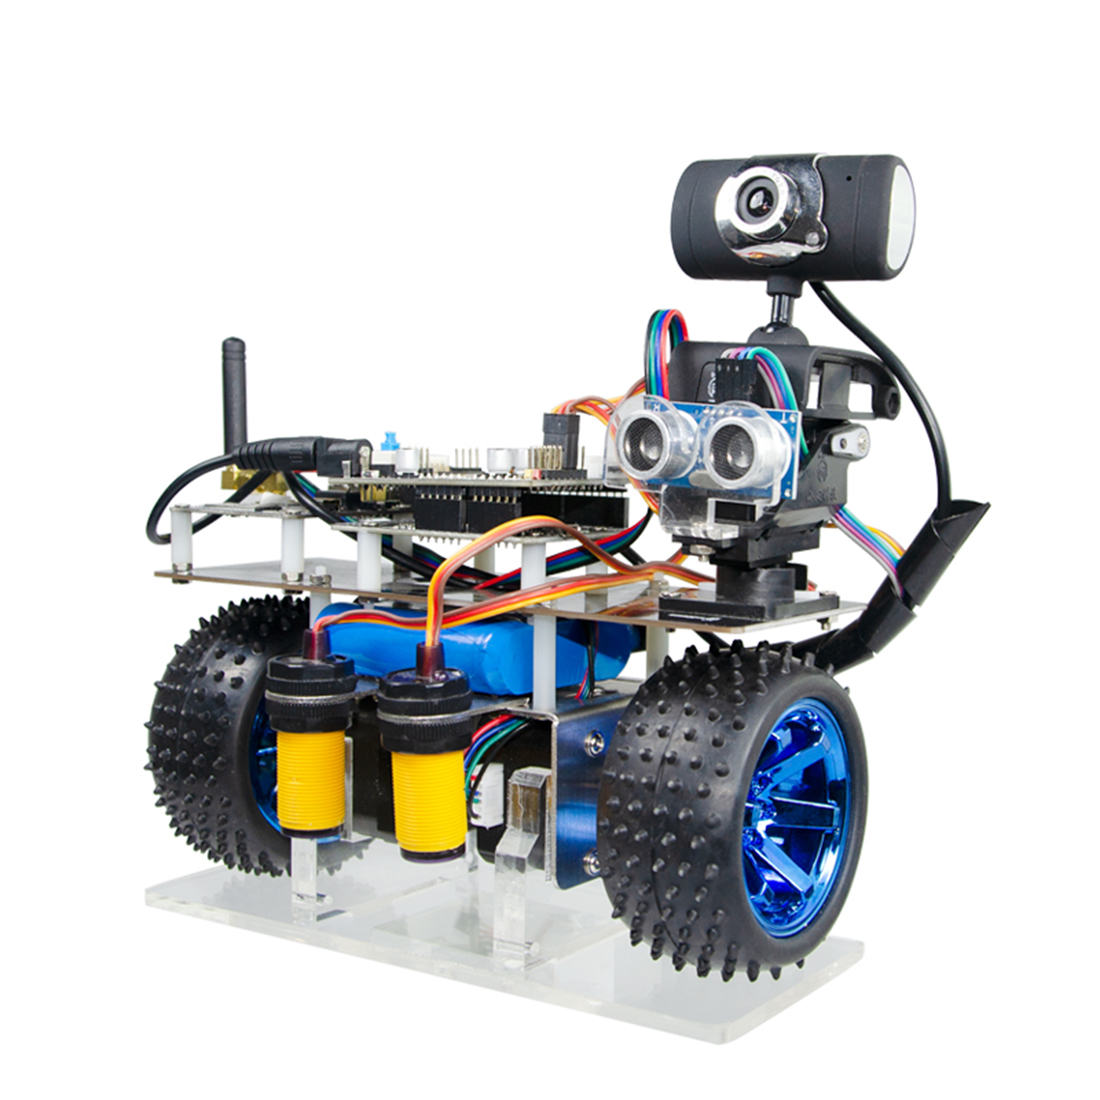 Programmable Intelligent Balance Car WiFi Video Robot Car Support IOS/Android APP PC Remote Control For STM32 - Patrol Obstacle